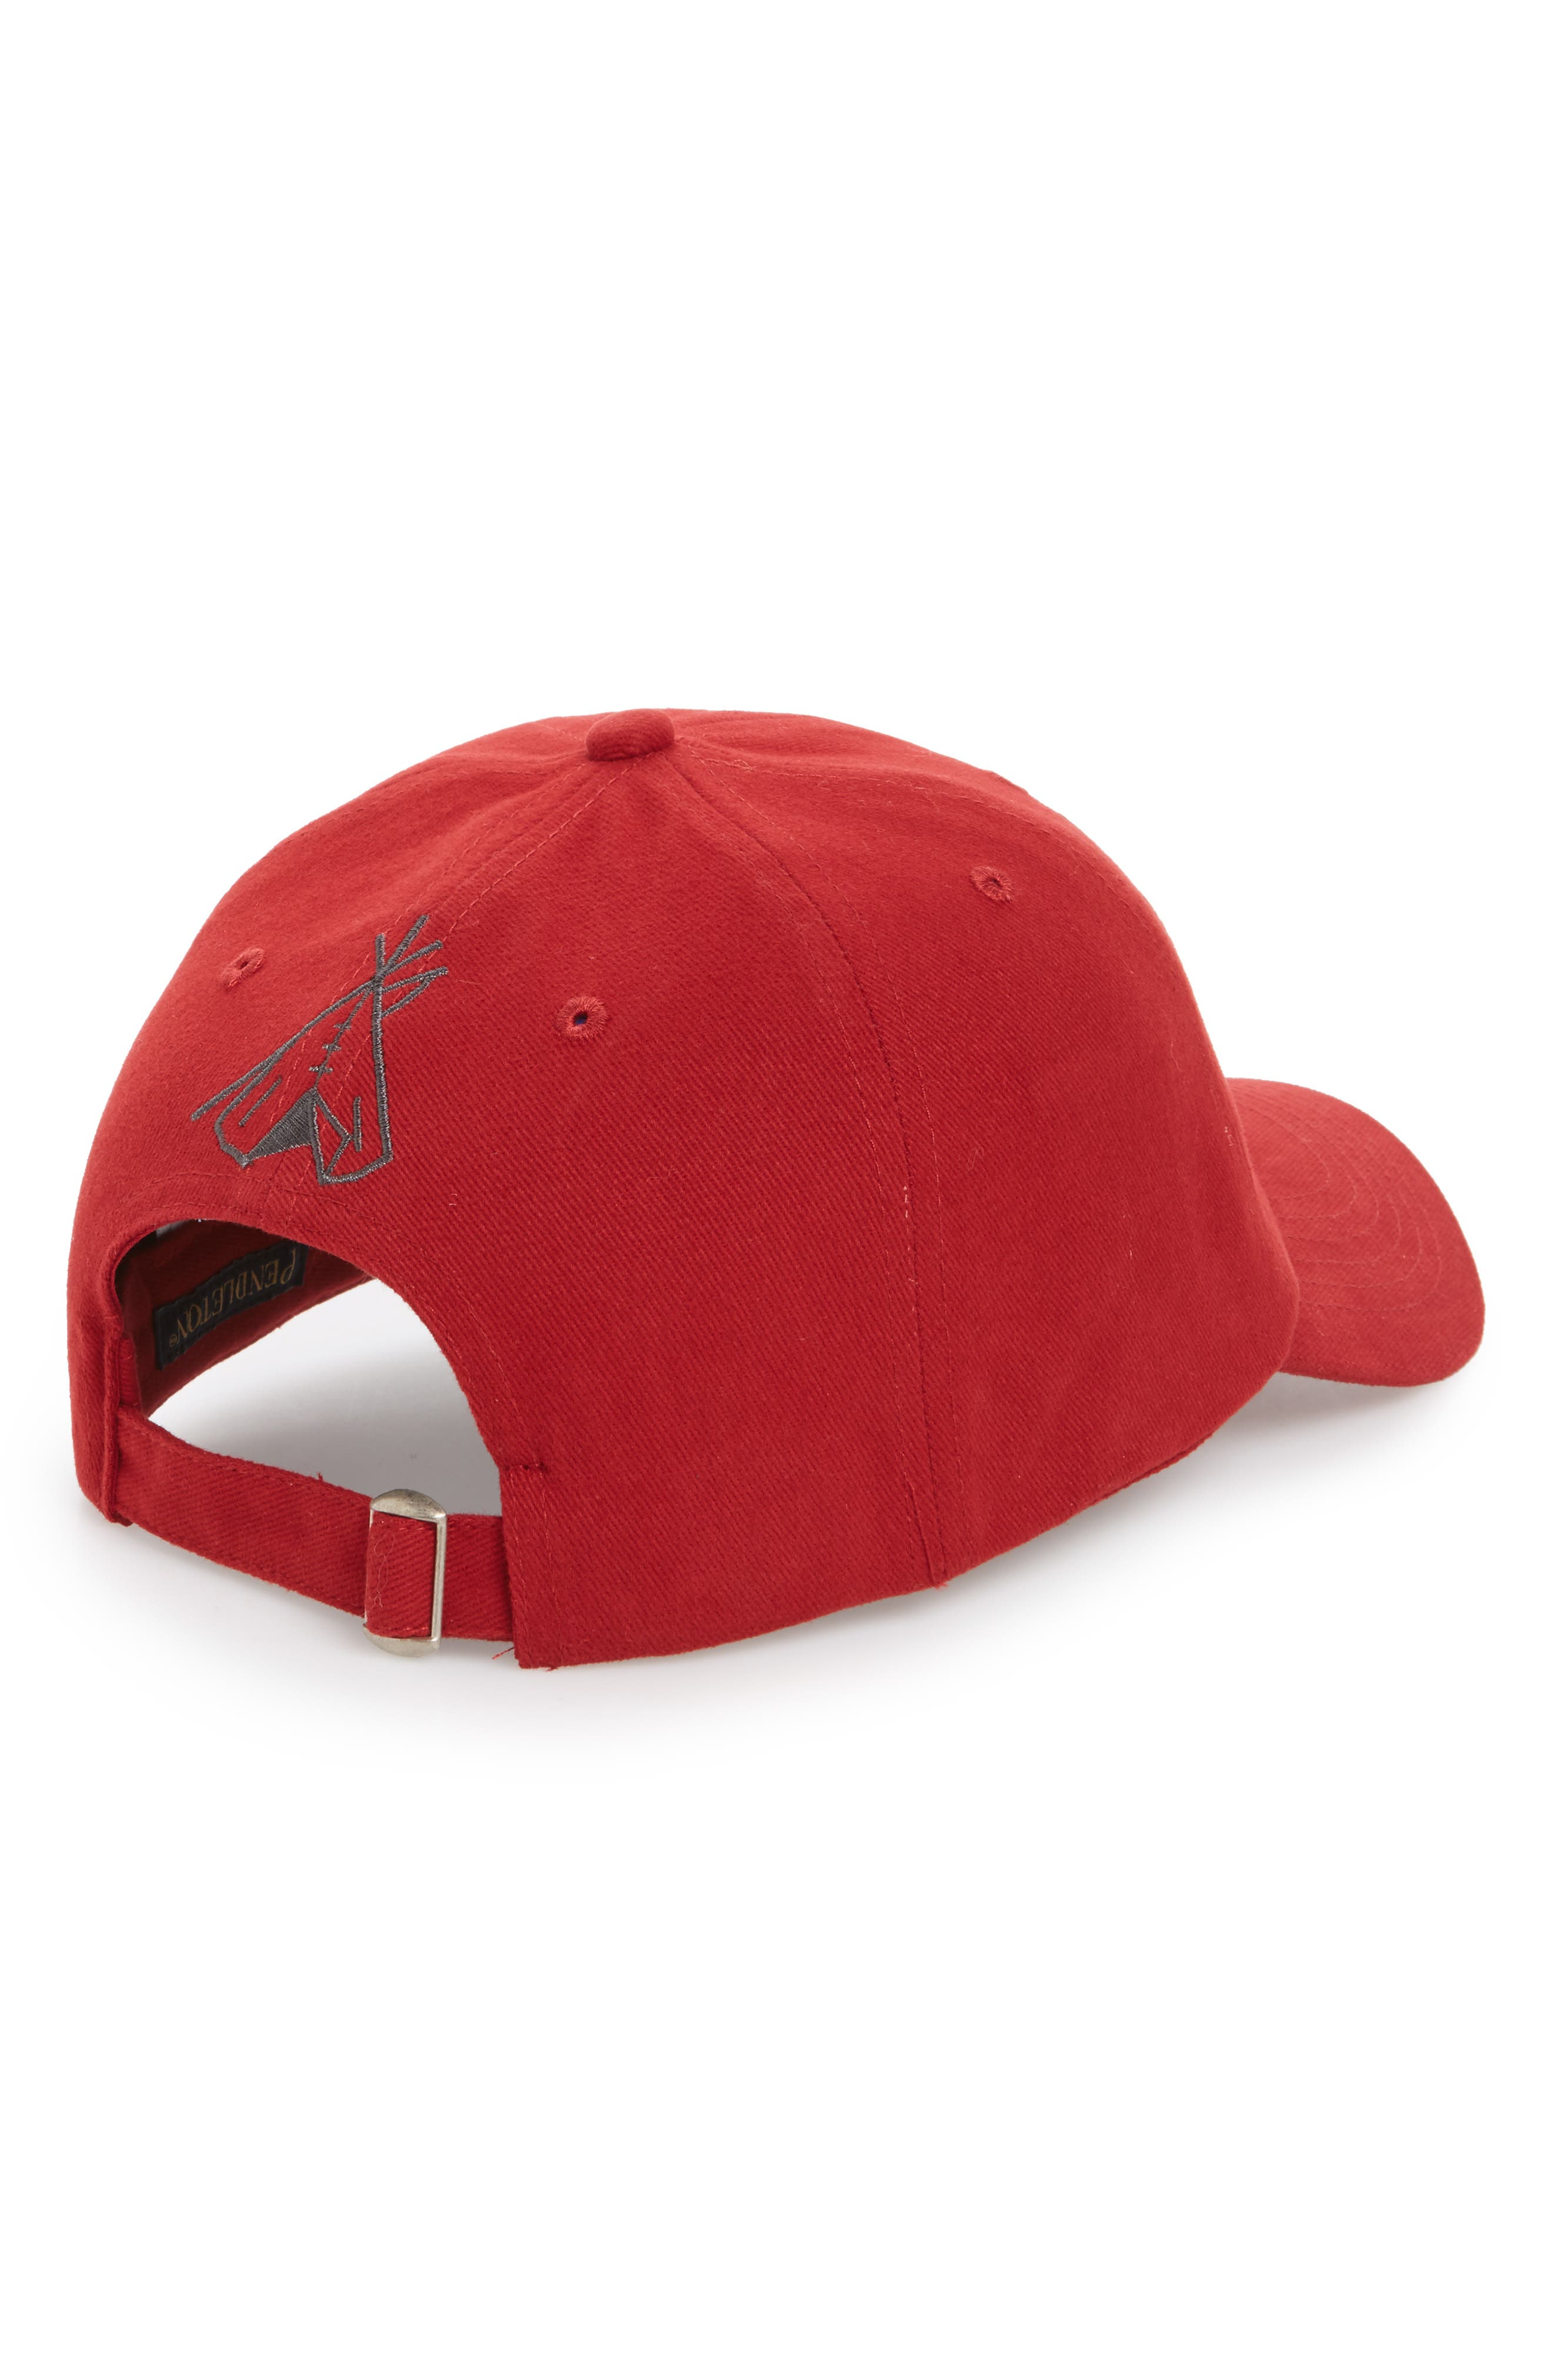 Embroidered Ball Cap,                             Alternate thumbnail 4, color,